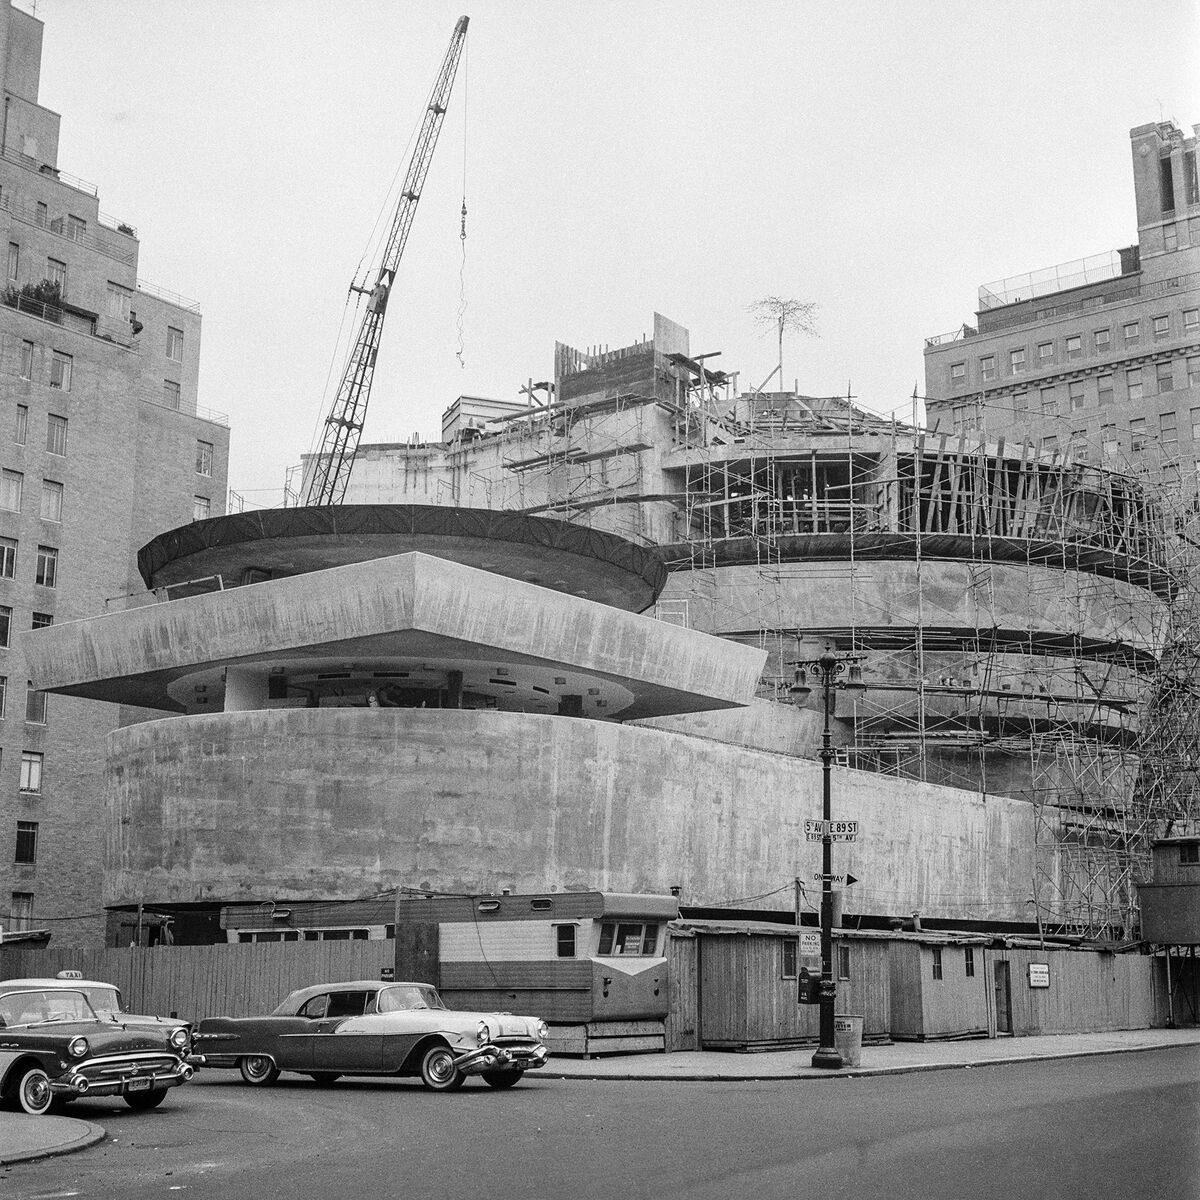 Solomon R. Guggenheim Museum, New York, under construction, ca. 1956–59. Photo by William H. Short. © Solomon R. Guggenheim Museum Archives, New York.